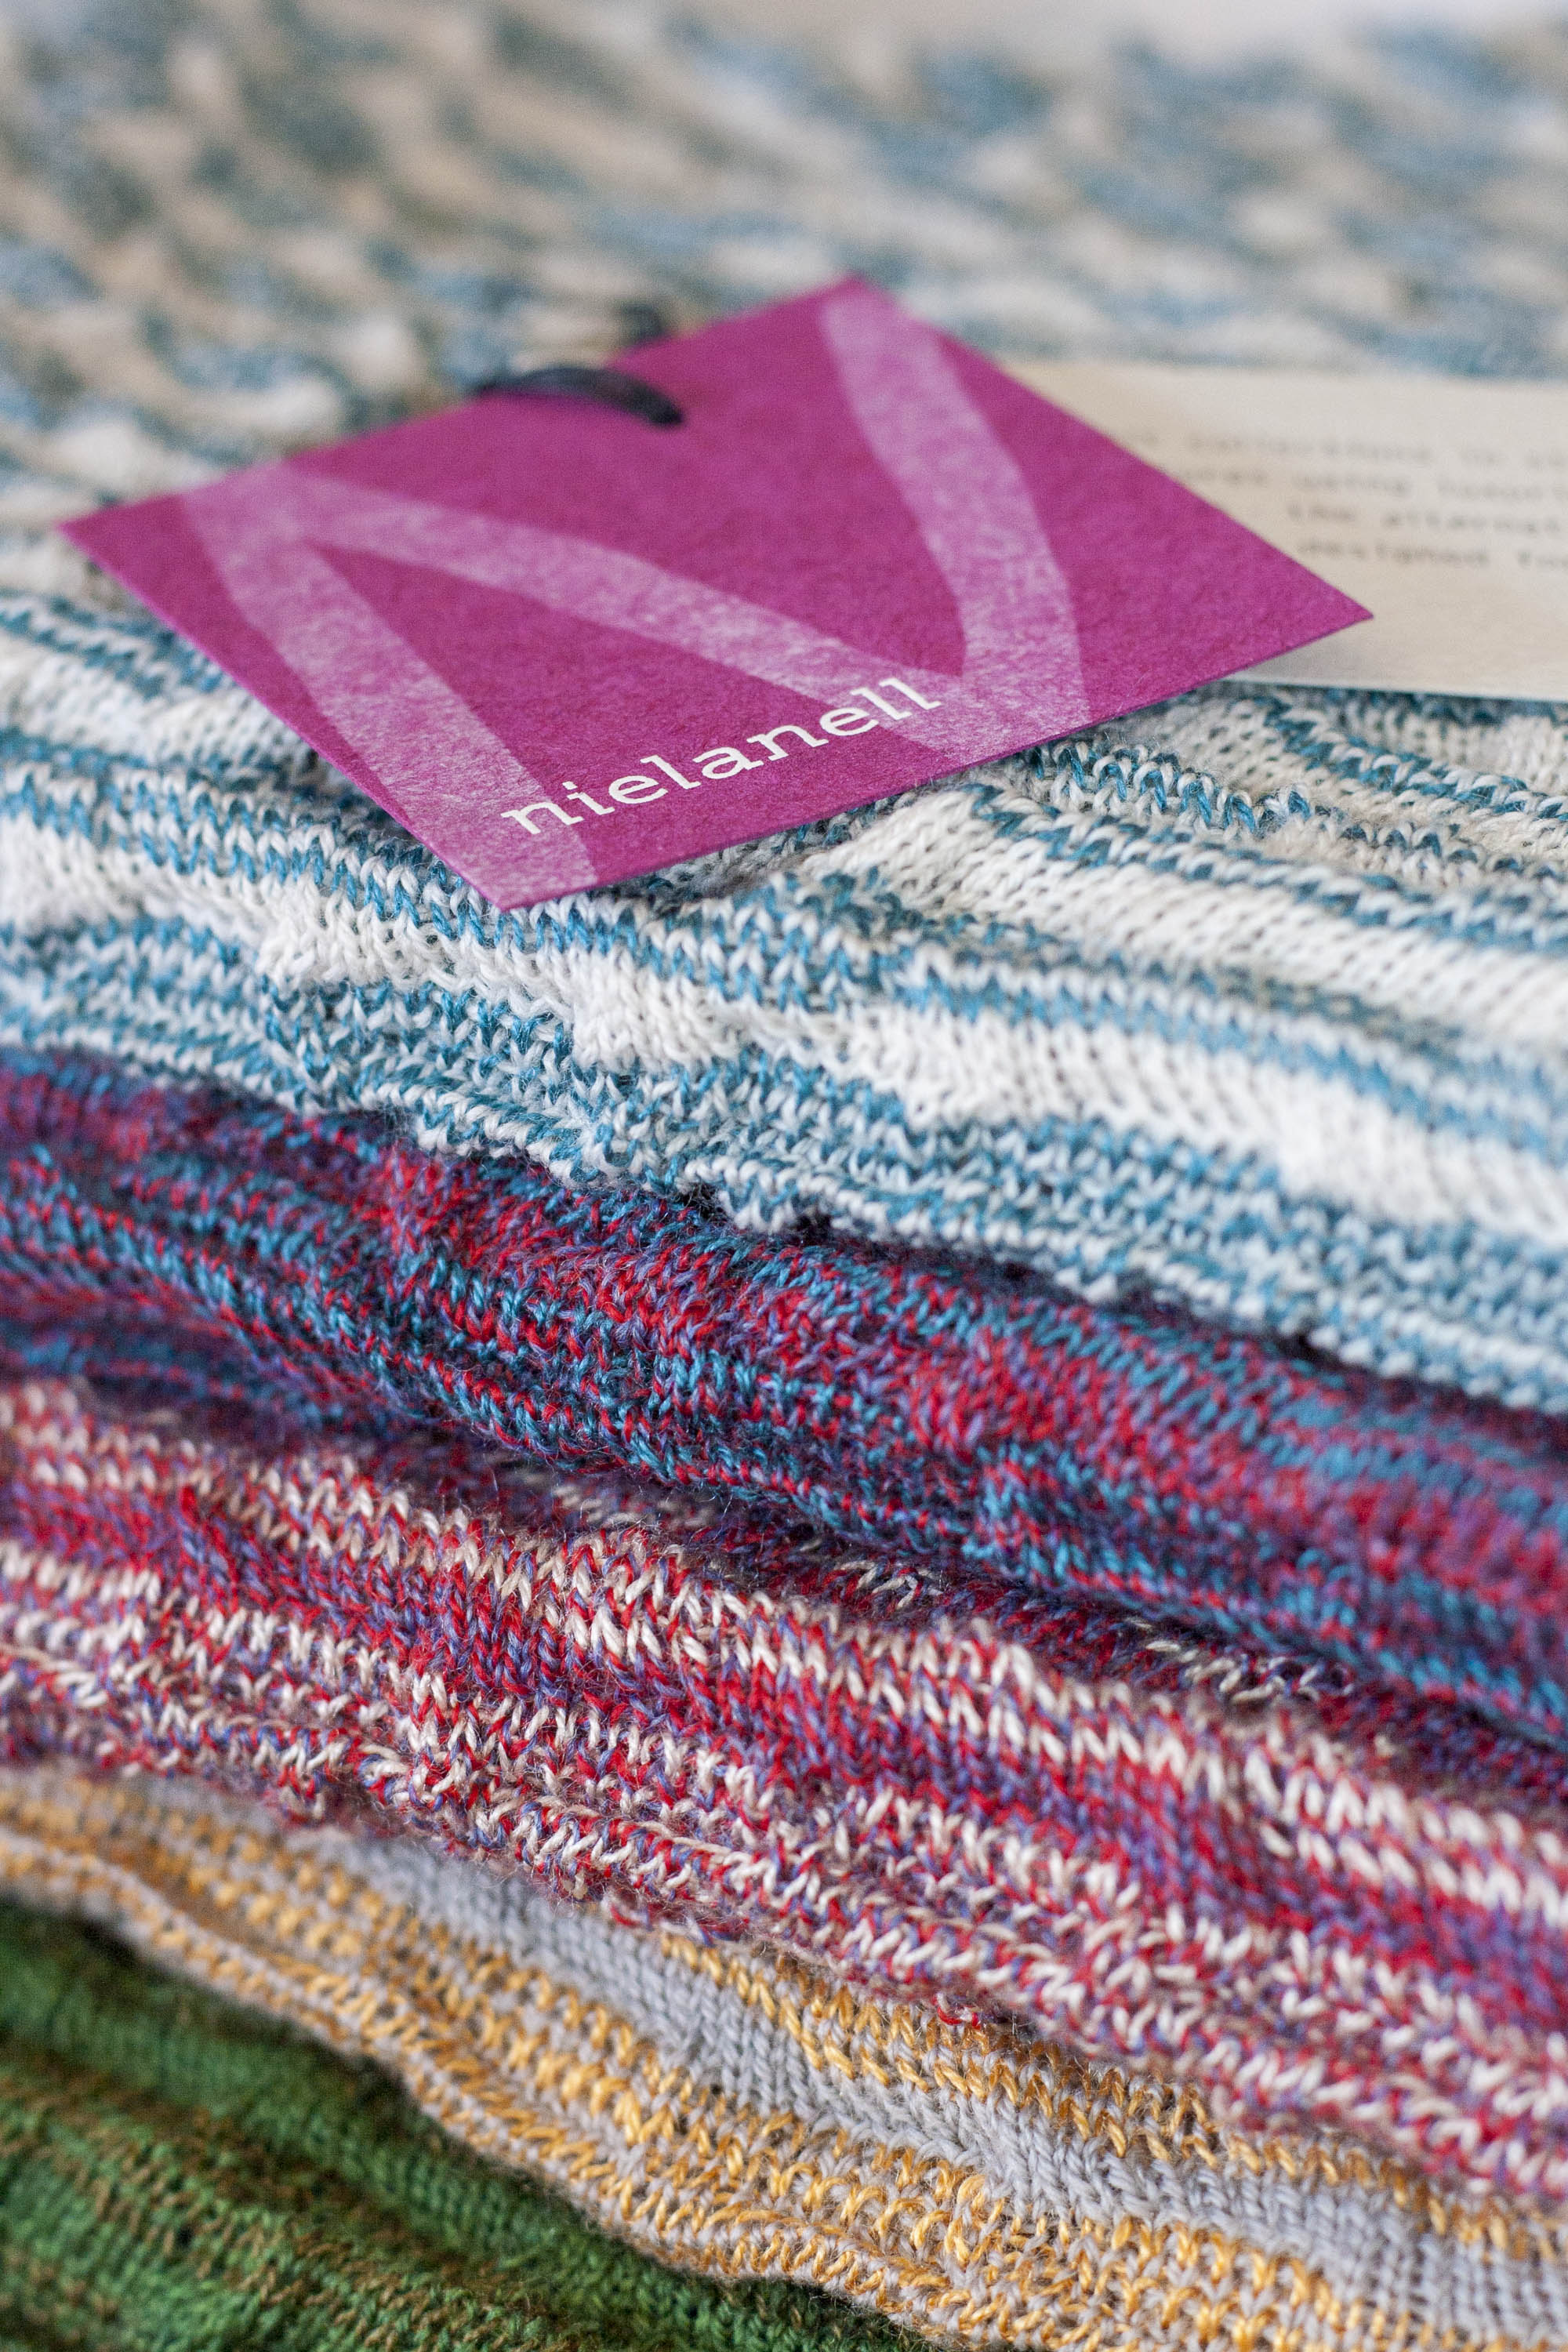 Stack of contemporary, colourful knitwear in the Nielanell studio, Hoswick, Shetland. Greens through pinks to blues. A swing ticket in recycled card is on the top garment. Pink card with white N and logo.